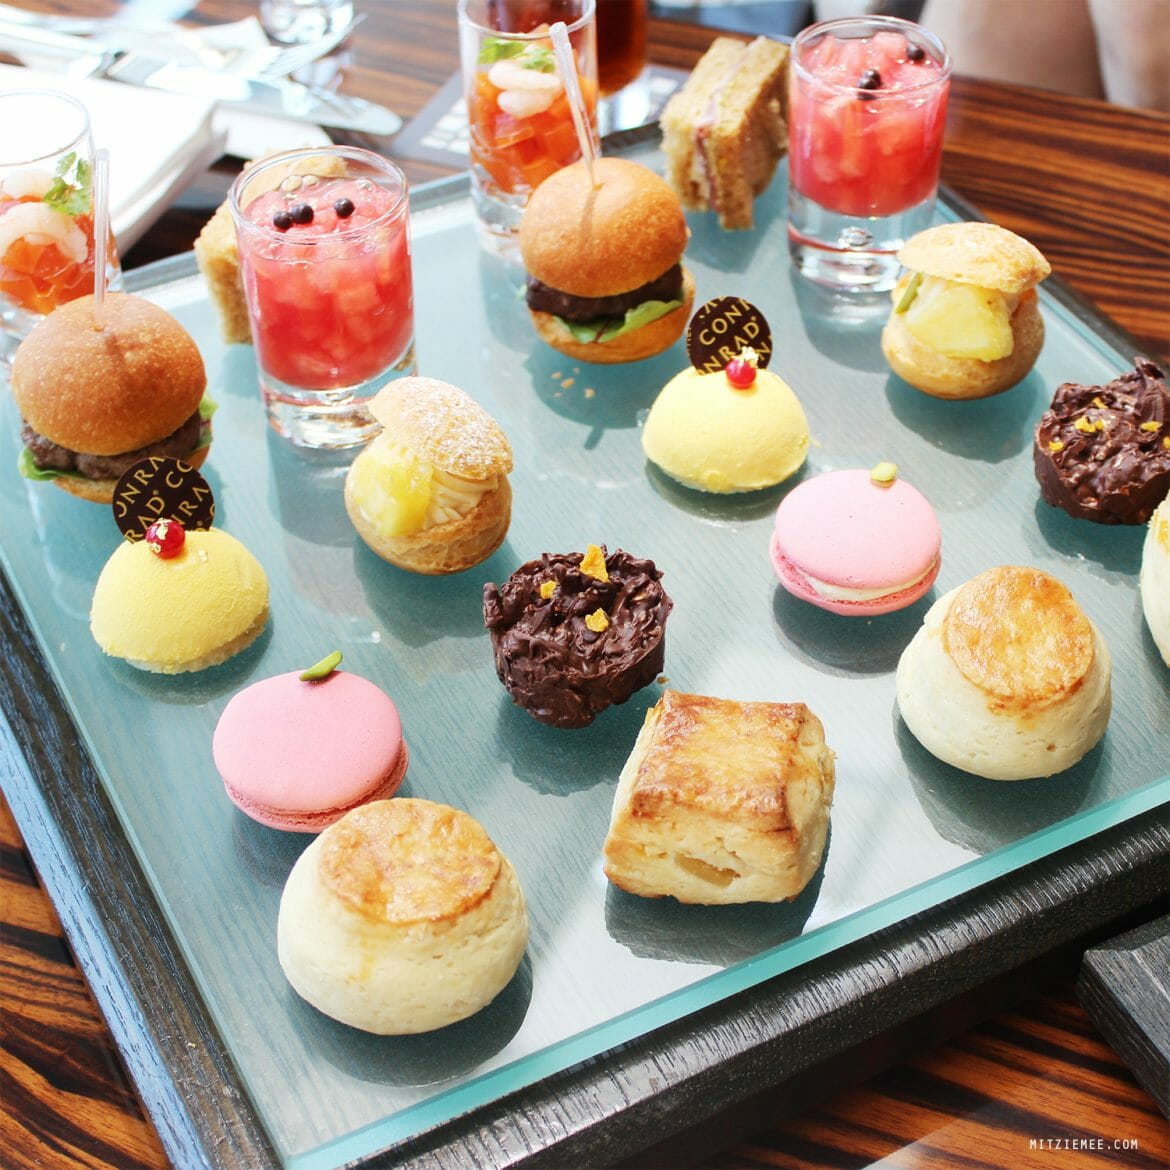 Afternoon tea at Twenty Eight at Conrad, Tokyo